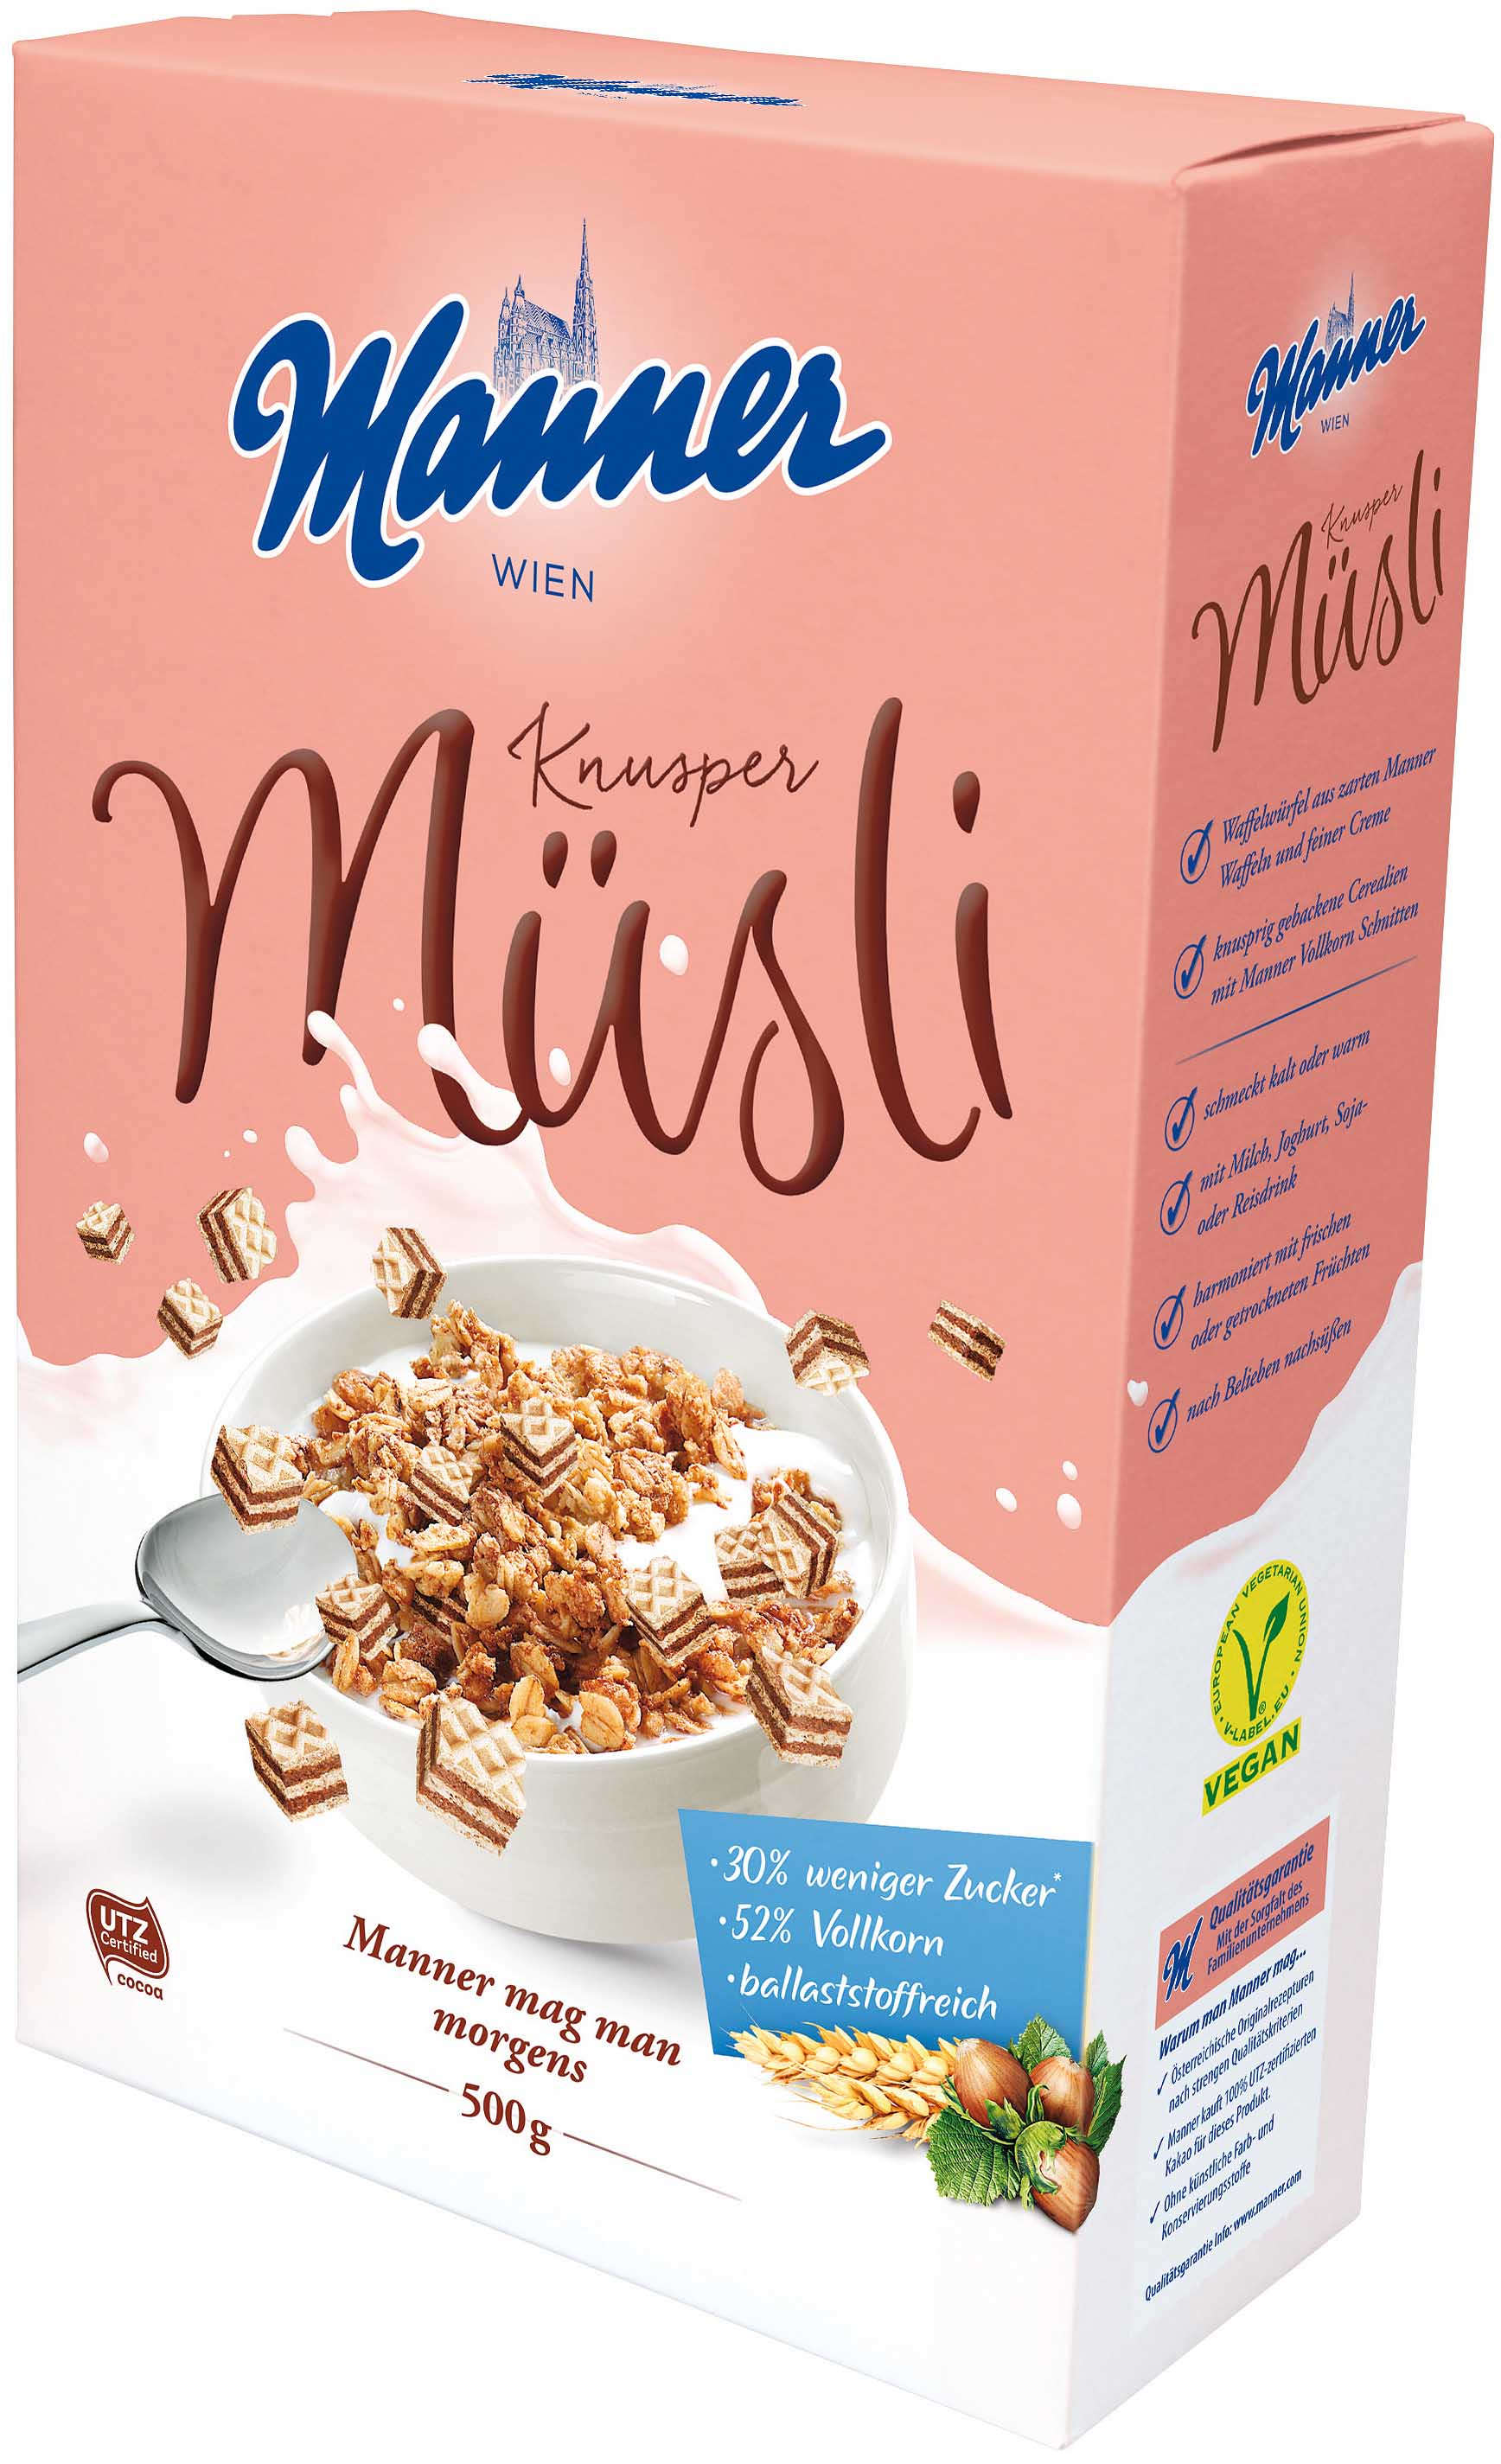 Manner Knusper Müsli 500g